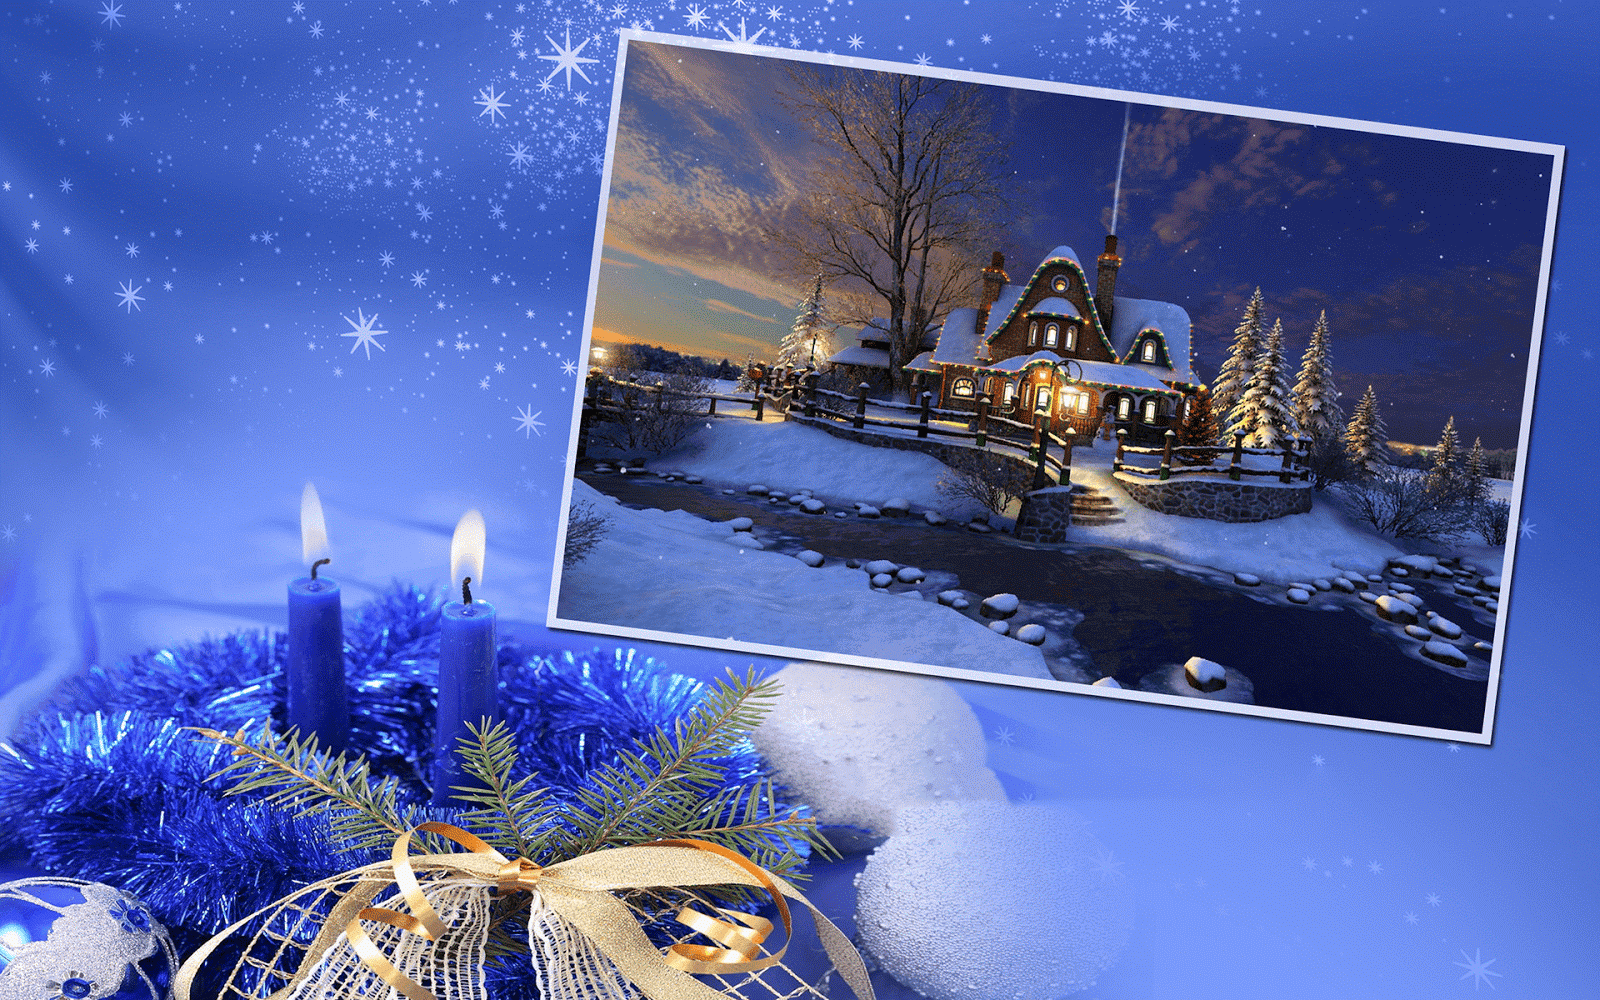 christmas day wallpapers hd download free 1080p